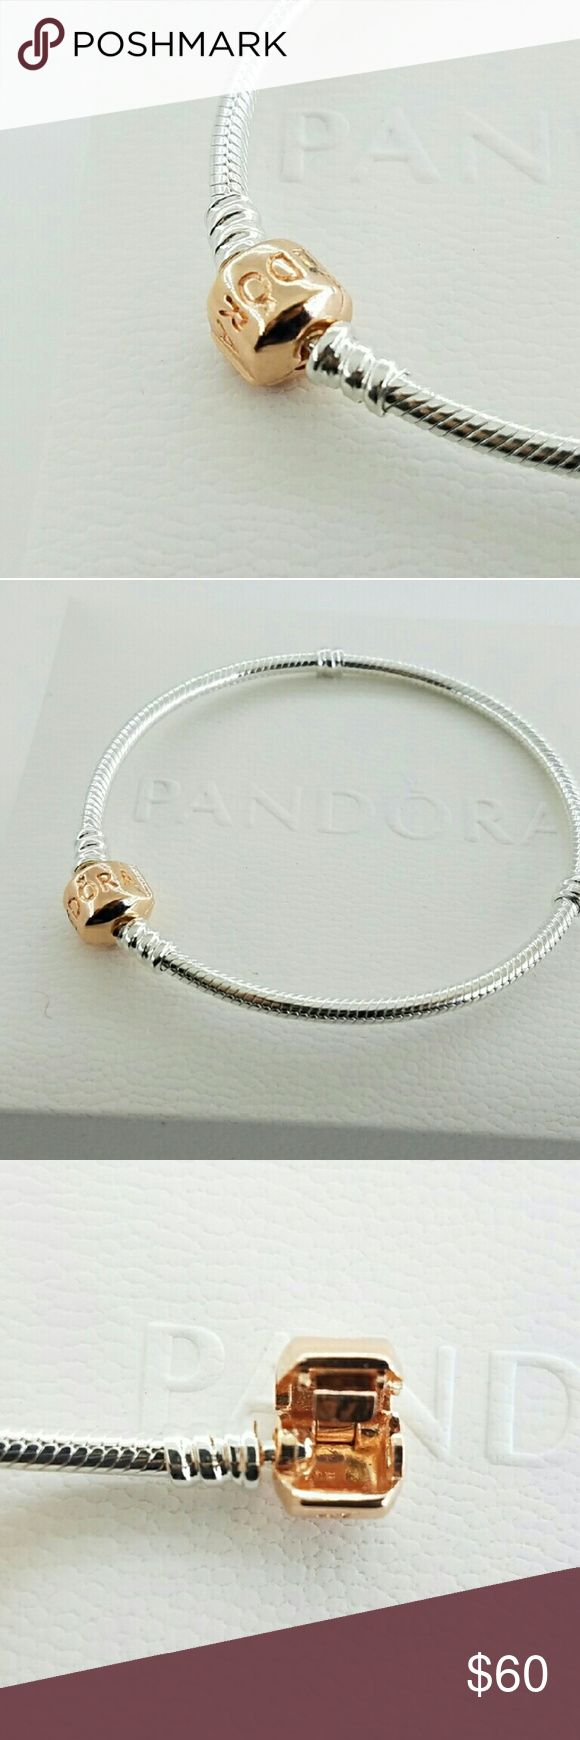 Authentic Pandora Rose Gold Clasp Bracelet 19-7.5 New! Authentic Pandora Rose Moments Silver Bracelet with Pandora Rose Clasp 580702-19 - 7.5 inch - Free Box   Part of Rose gold collection  New and never used  % 100 authentic  R/ale hallmark stamps on it Official Pandora black velvet box with purchase   If you interested in another item on my list please ask me, I do combine   Enjoy shopping Jewelry Bracelets